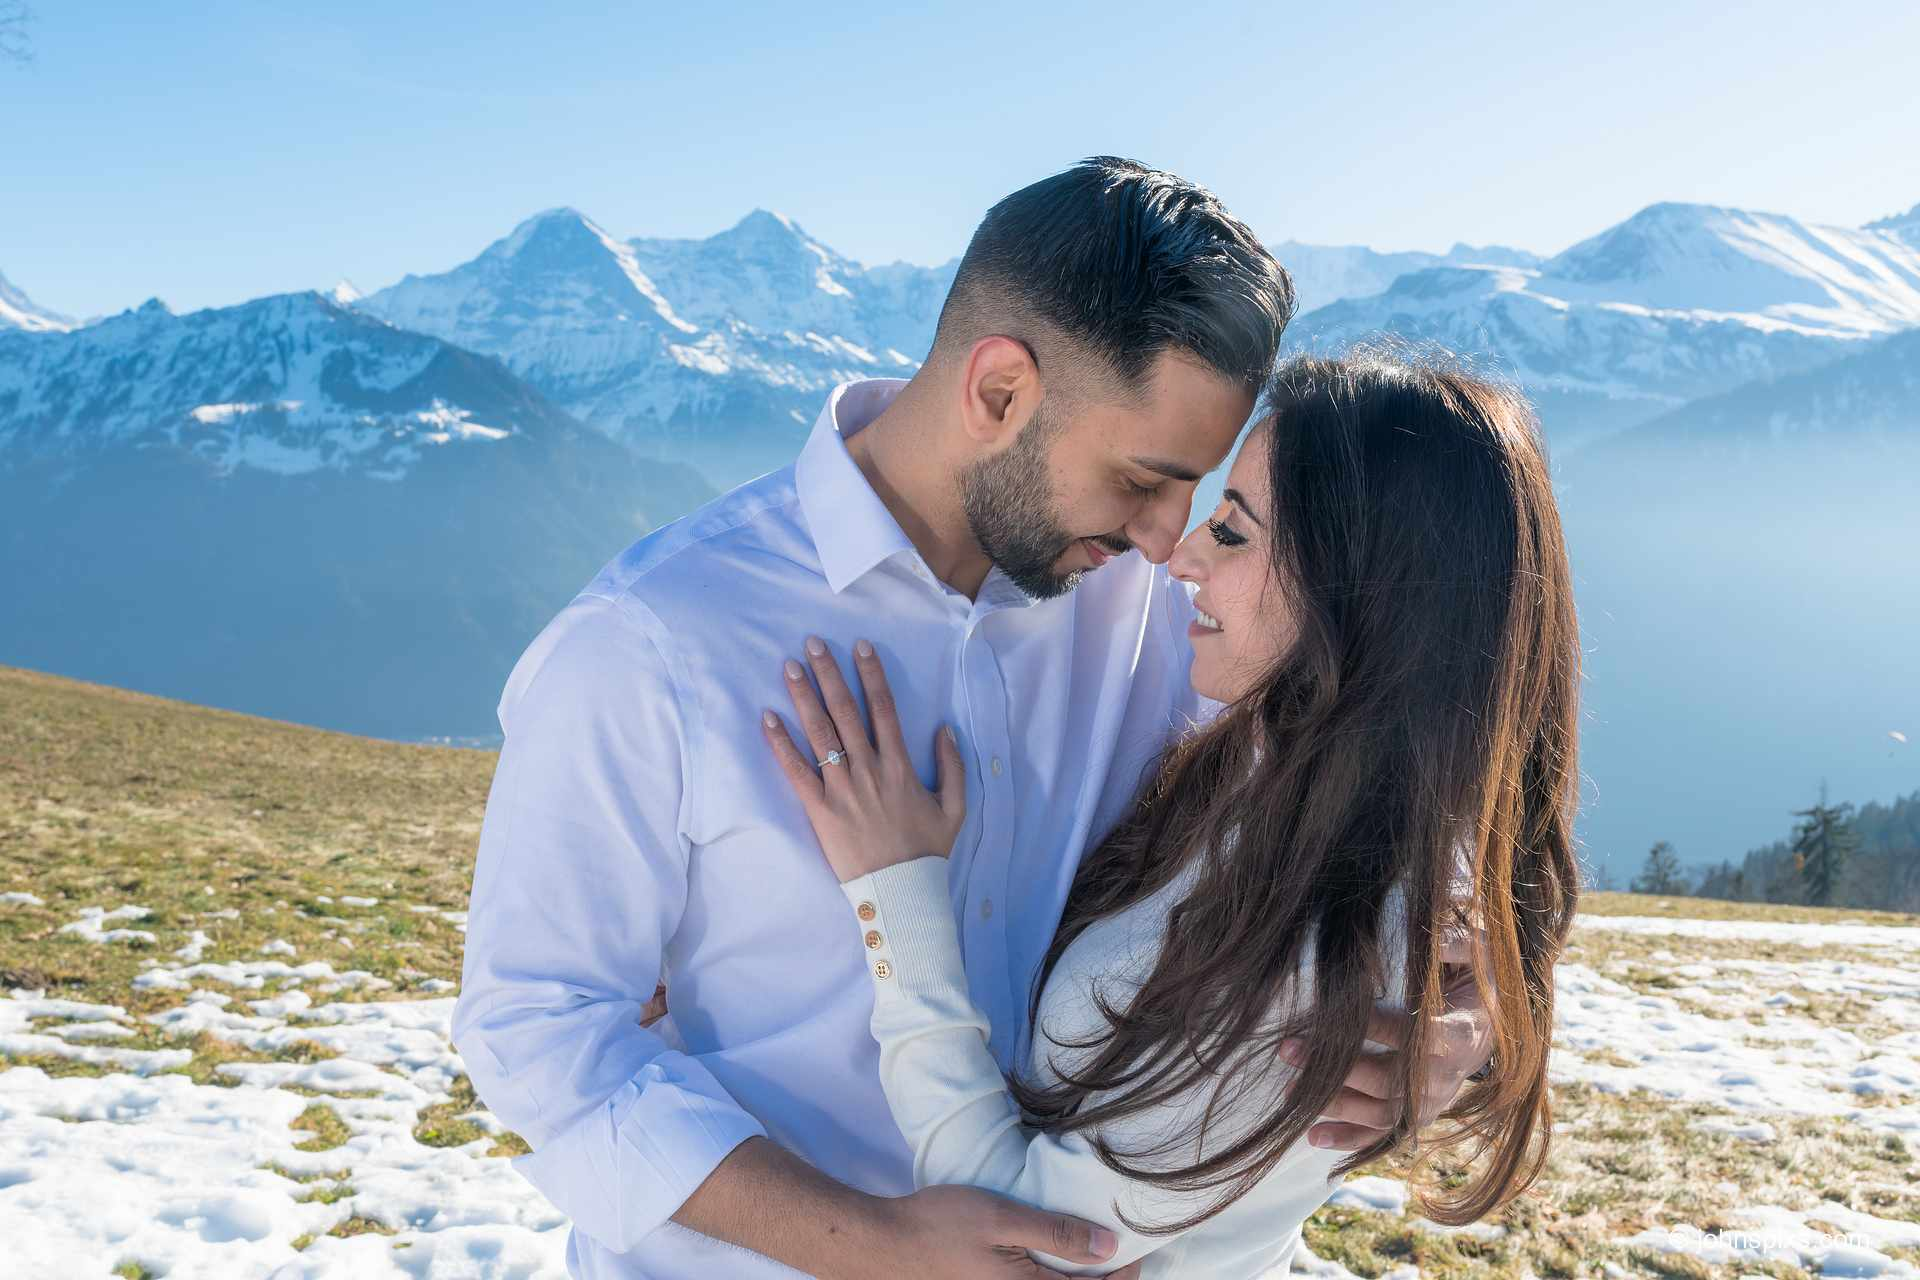 photographer surprise marriage proposal interlaken switzerland